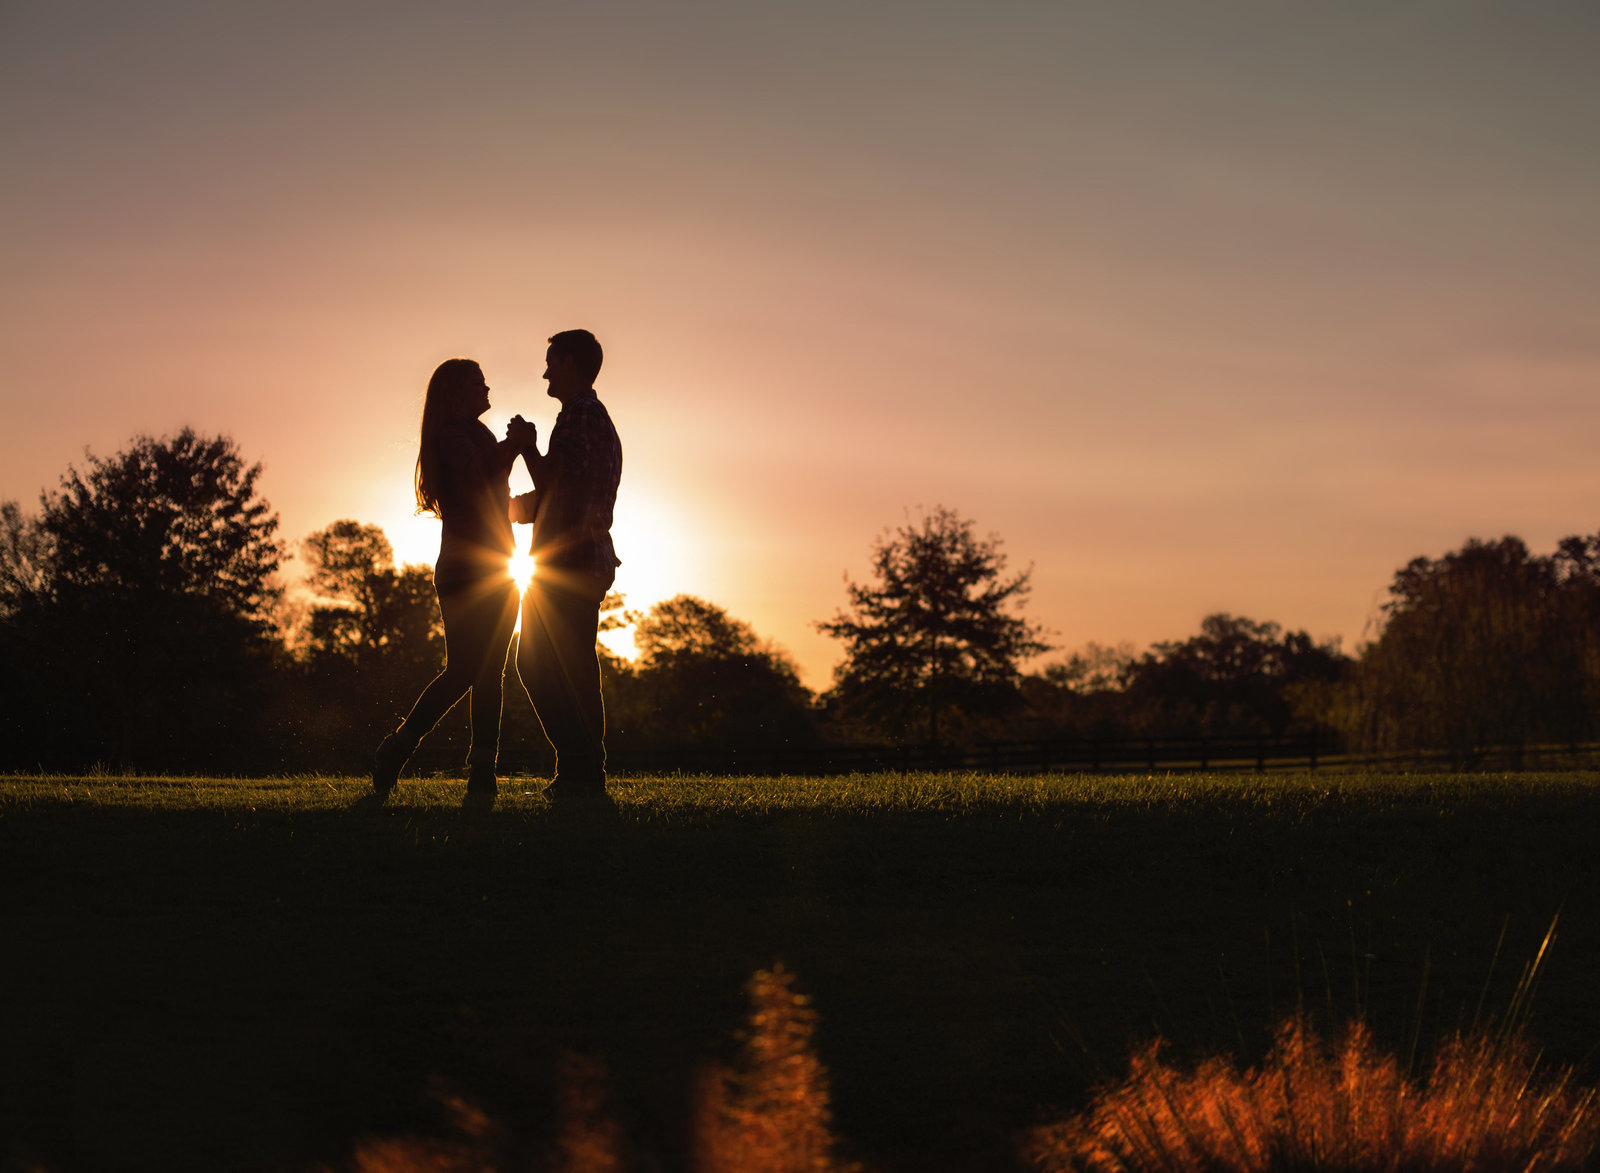 charlotte engagement photographer jamie lucido at Morning Glory Farm at sunset creates a beautiful silhouette of engaged couple dancing